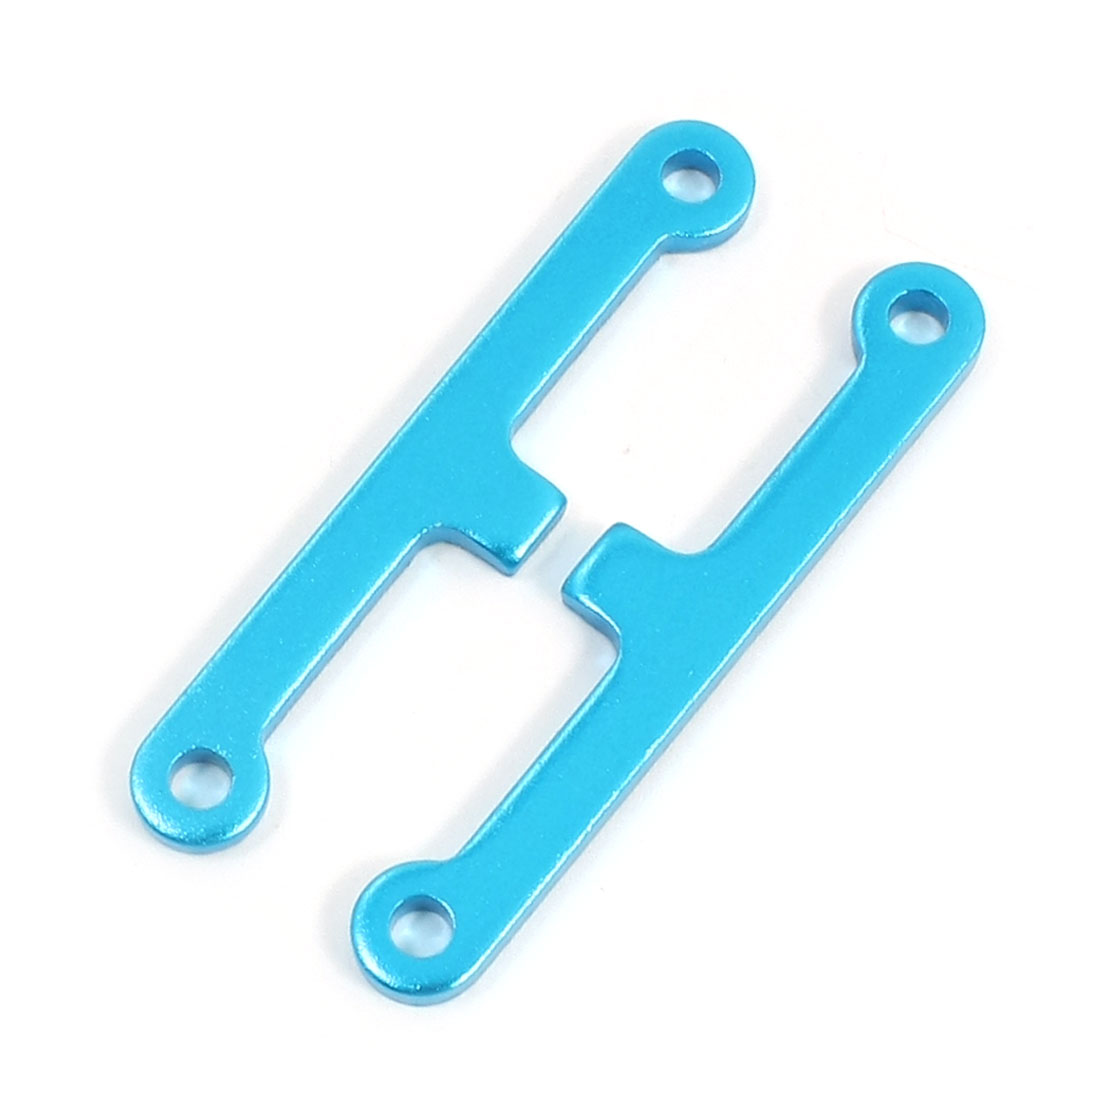 2pcs 02173 Blue Suspension Arm Pads for 1/10 4WD Car Buggy Truck